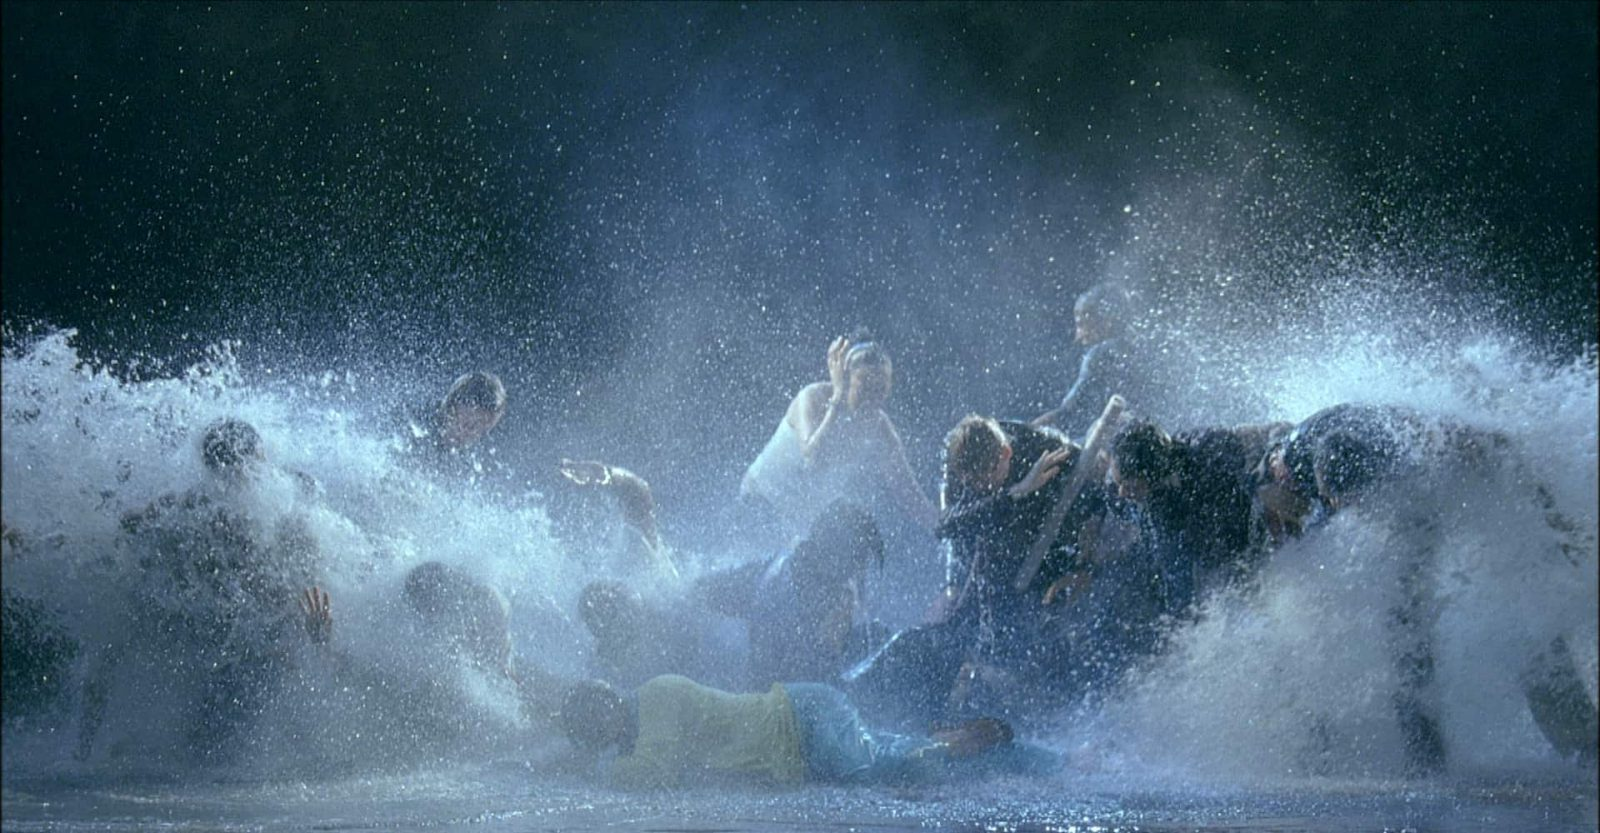 Bill Viola, The Raft, May 2004. Video/sound installation. Photos: Kira Perov. Courtesy Bill Viola Studio, James Cohan Gallery, New York and American Federation of Arts.